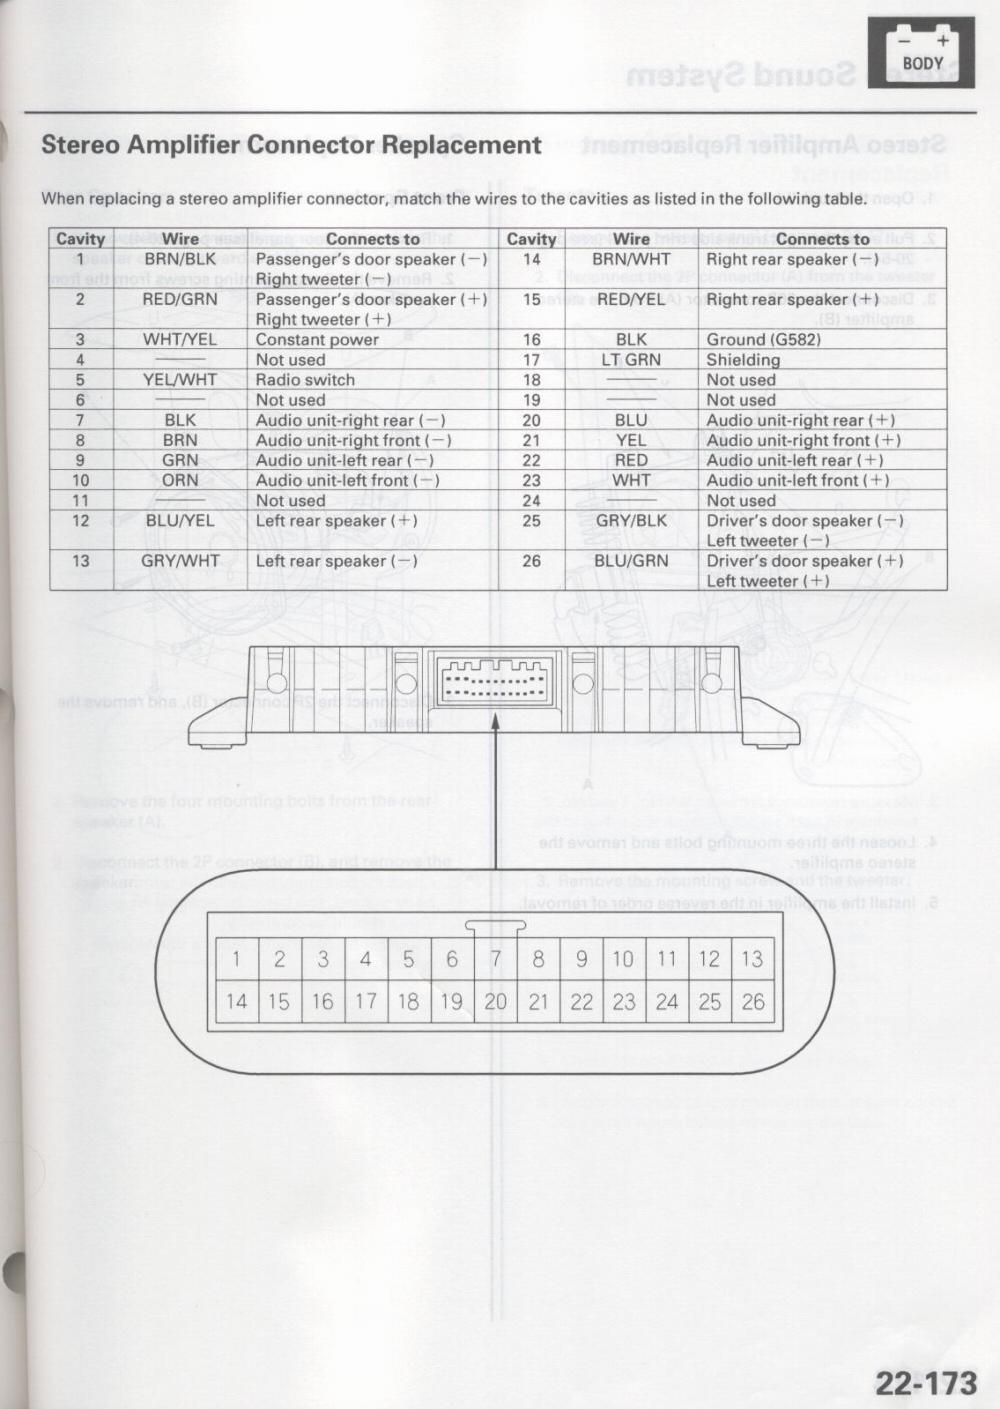 Acura 2002 TL car stereo amplifier wiring diagram harness car radio stereo audio wiring diagram autoradio connector wire GE 300 Line Control Wiring Diagram at mifinder.co